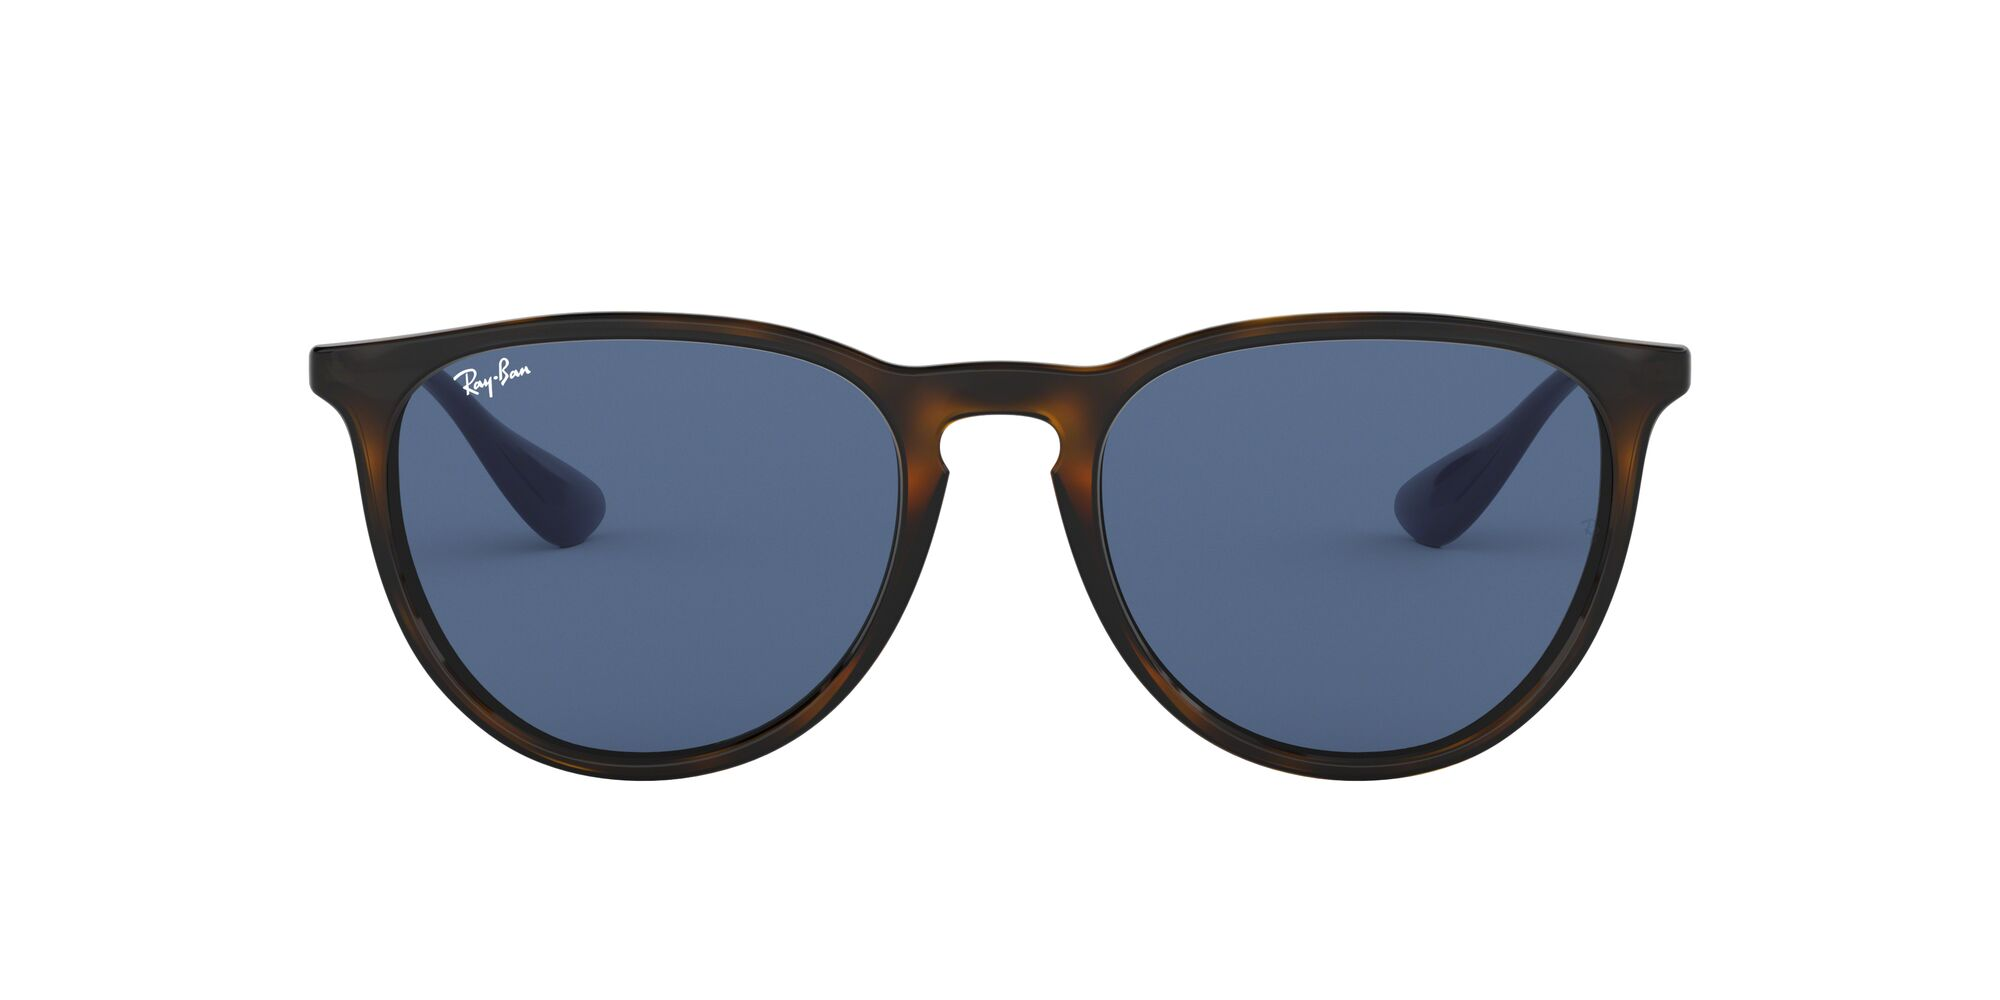 Front Ray-Ban Ray-Ban 0RB4171 639080 54/18 Bruin/Blauw